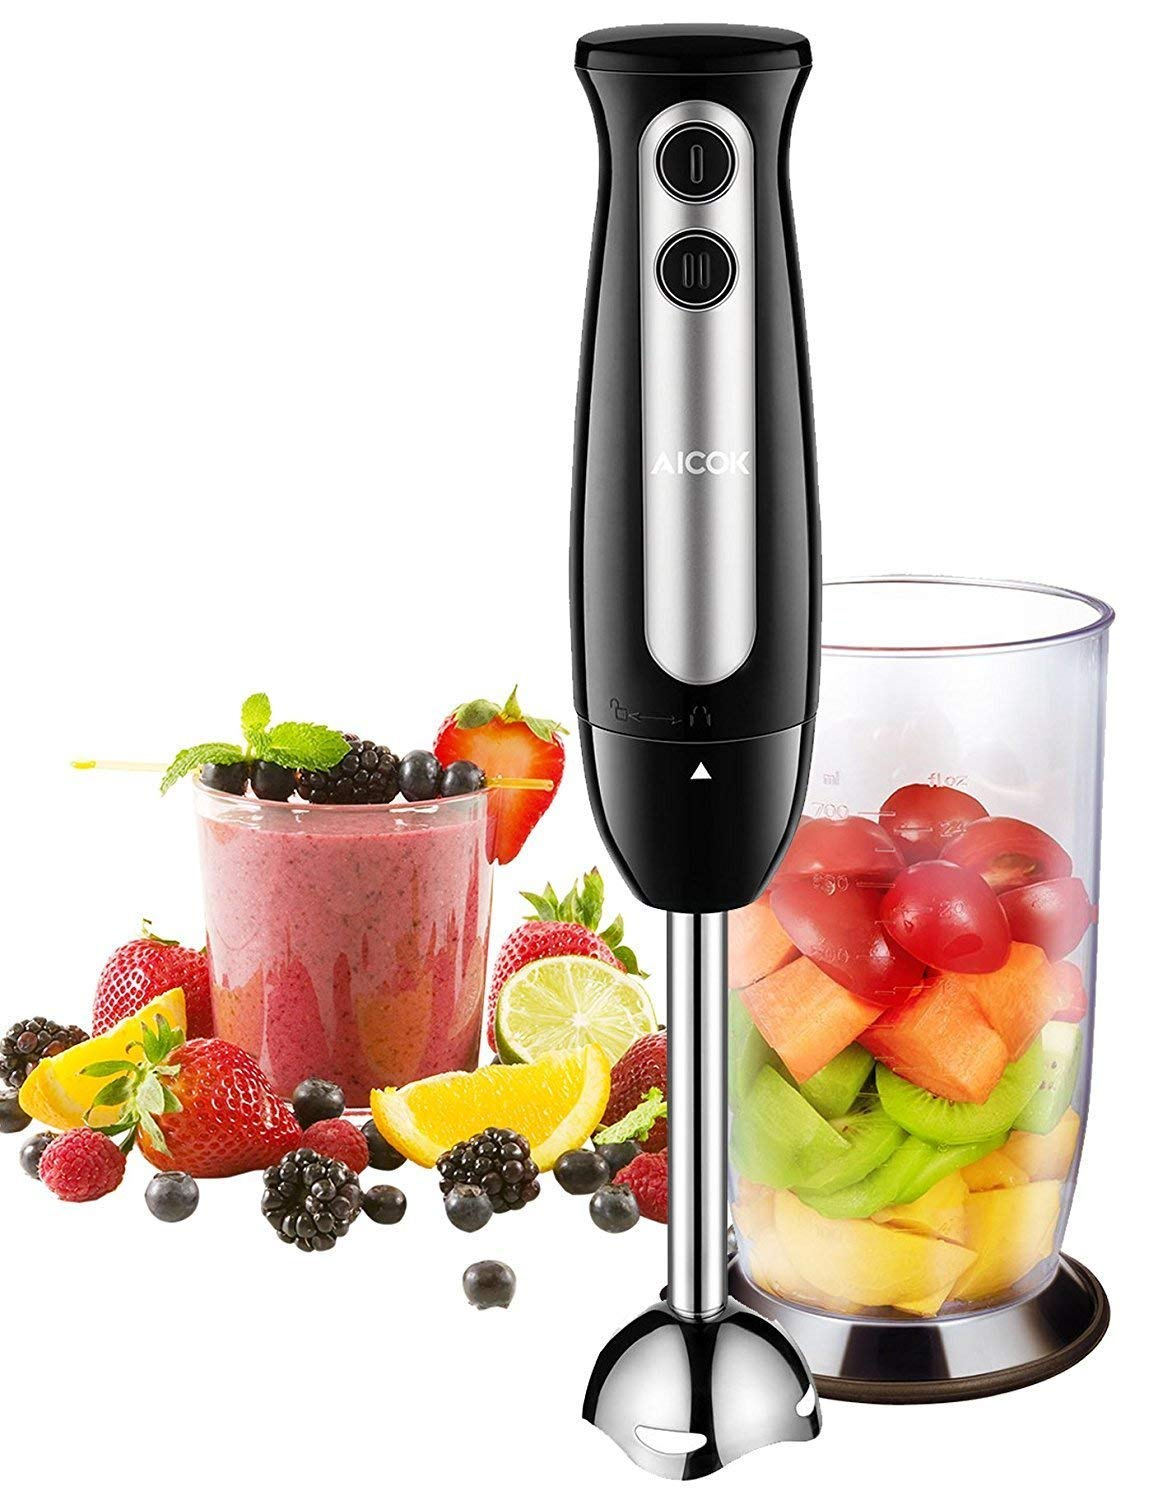 Immersion Blender, Aicok 2-in-1 Hand Blender with 700ml BPA-Free Beaker, 304 Stainless Steel Blades, Ergonomic Handle, 2-Speed Immersion Hand Blender for Baby Food, Juices, Sauces and Soup, 300W